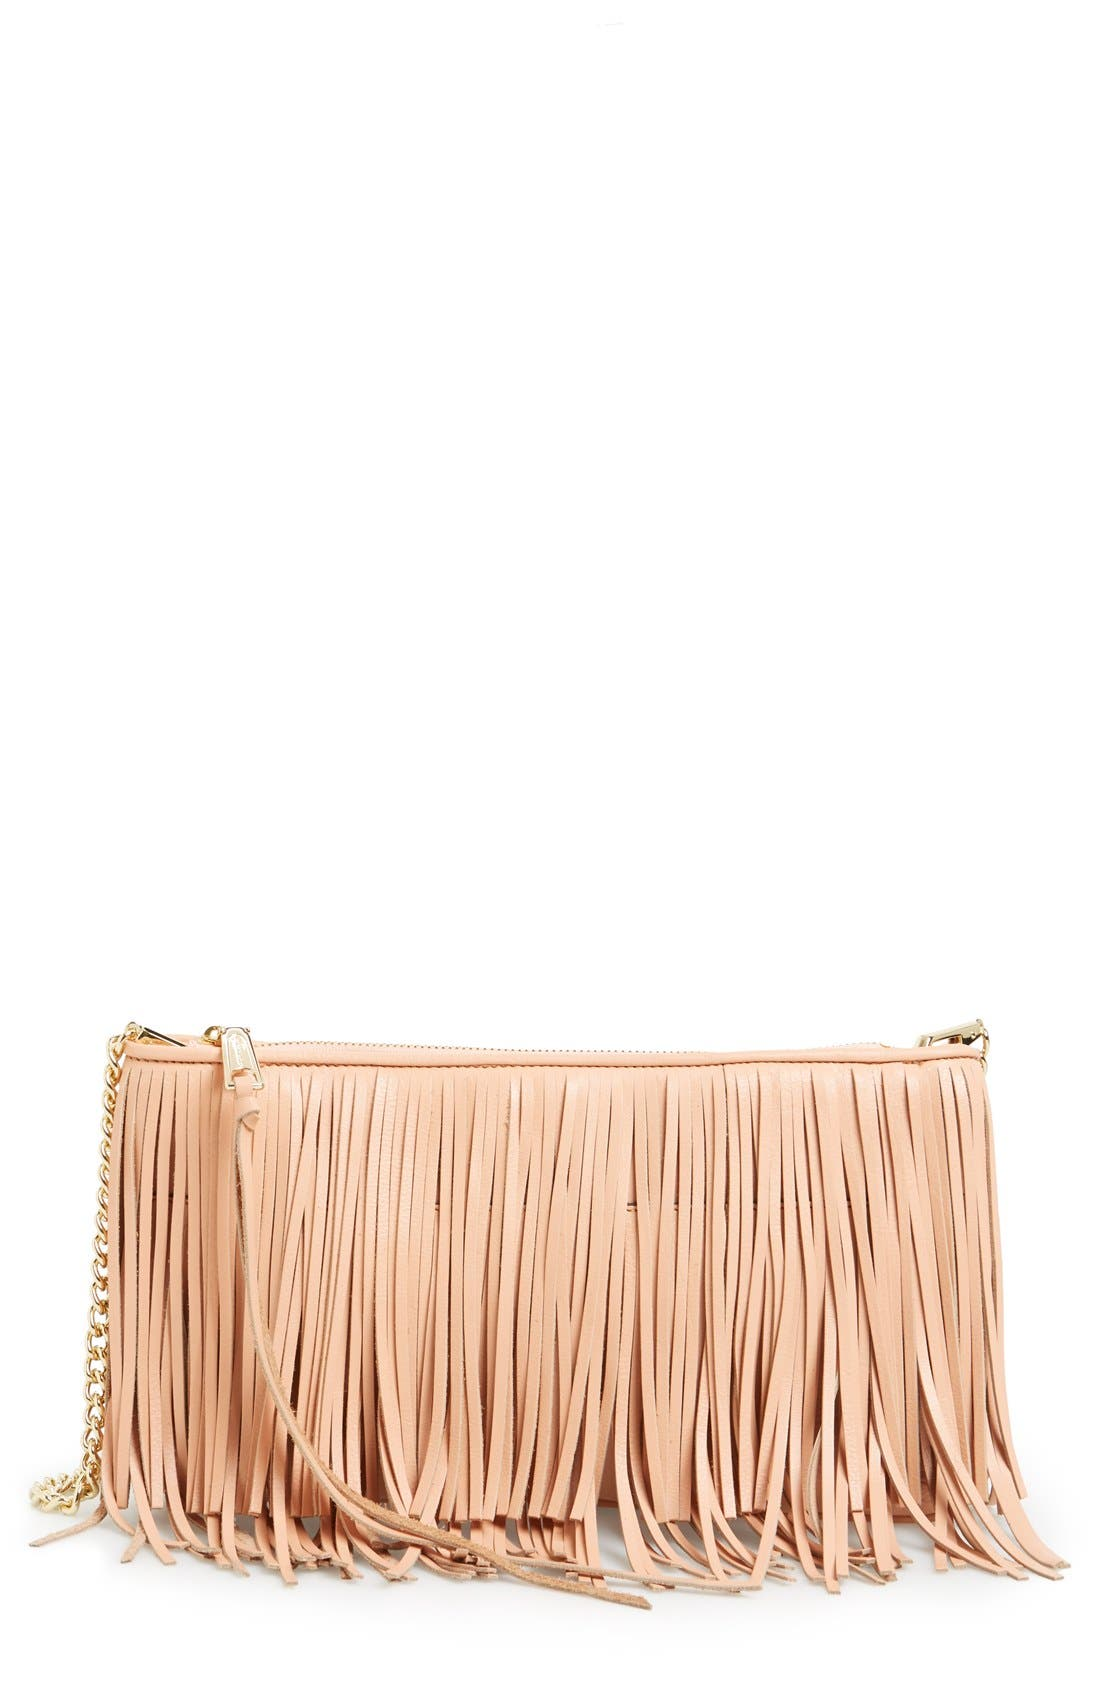 Alternate Image 1 Selected - Rebecca Minkoff 'Large Finn' Clutch